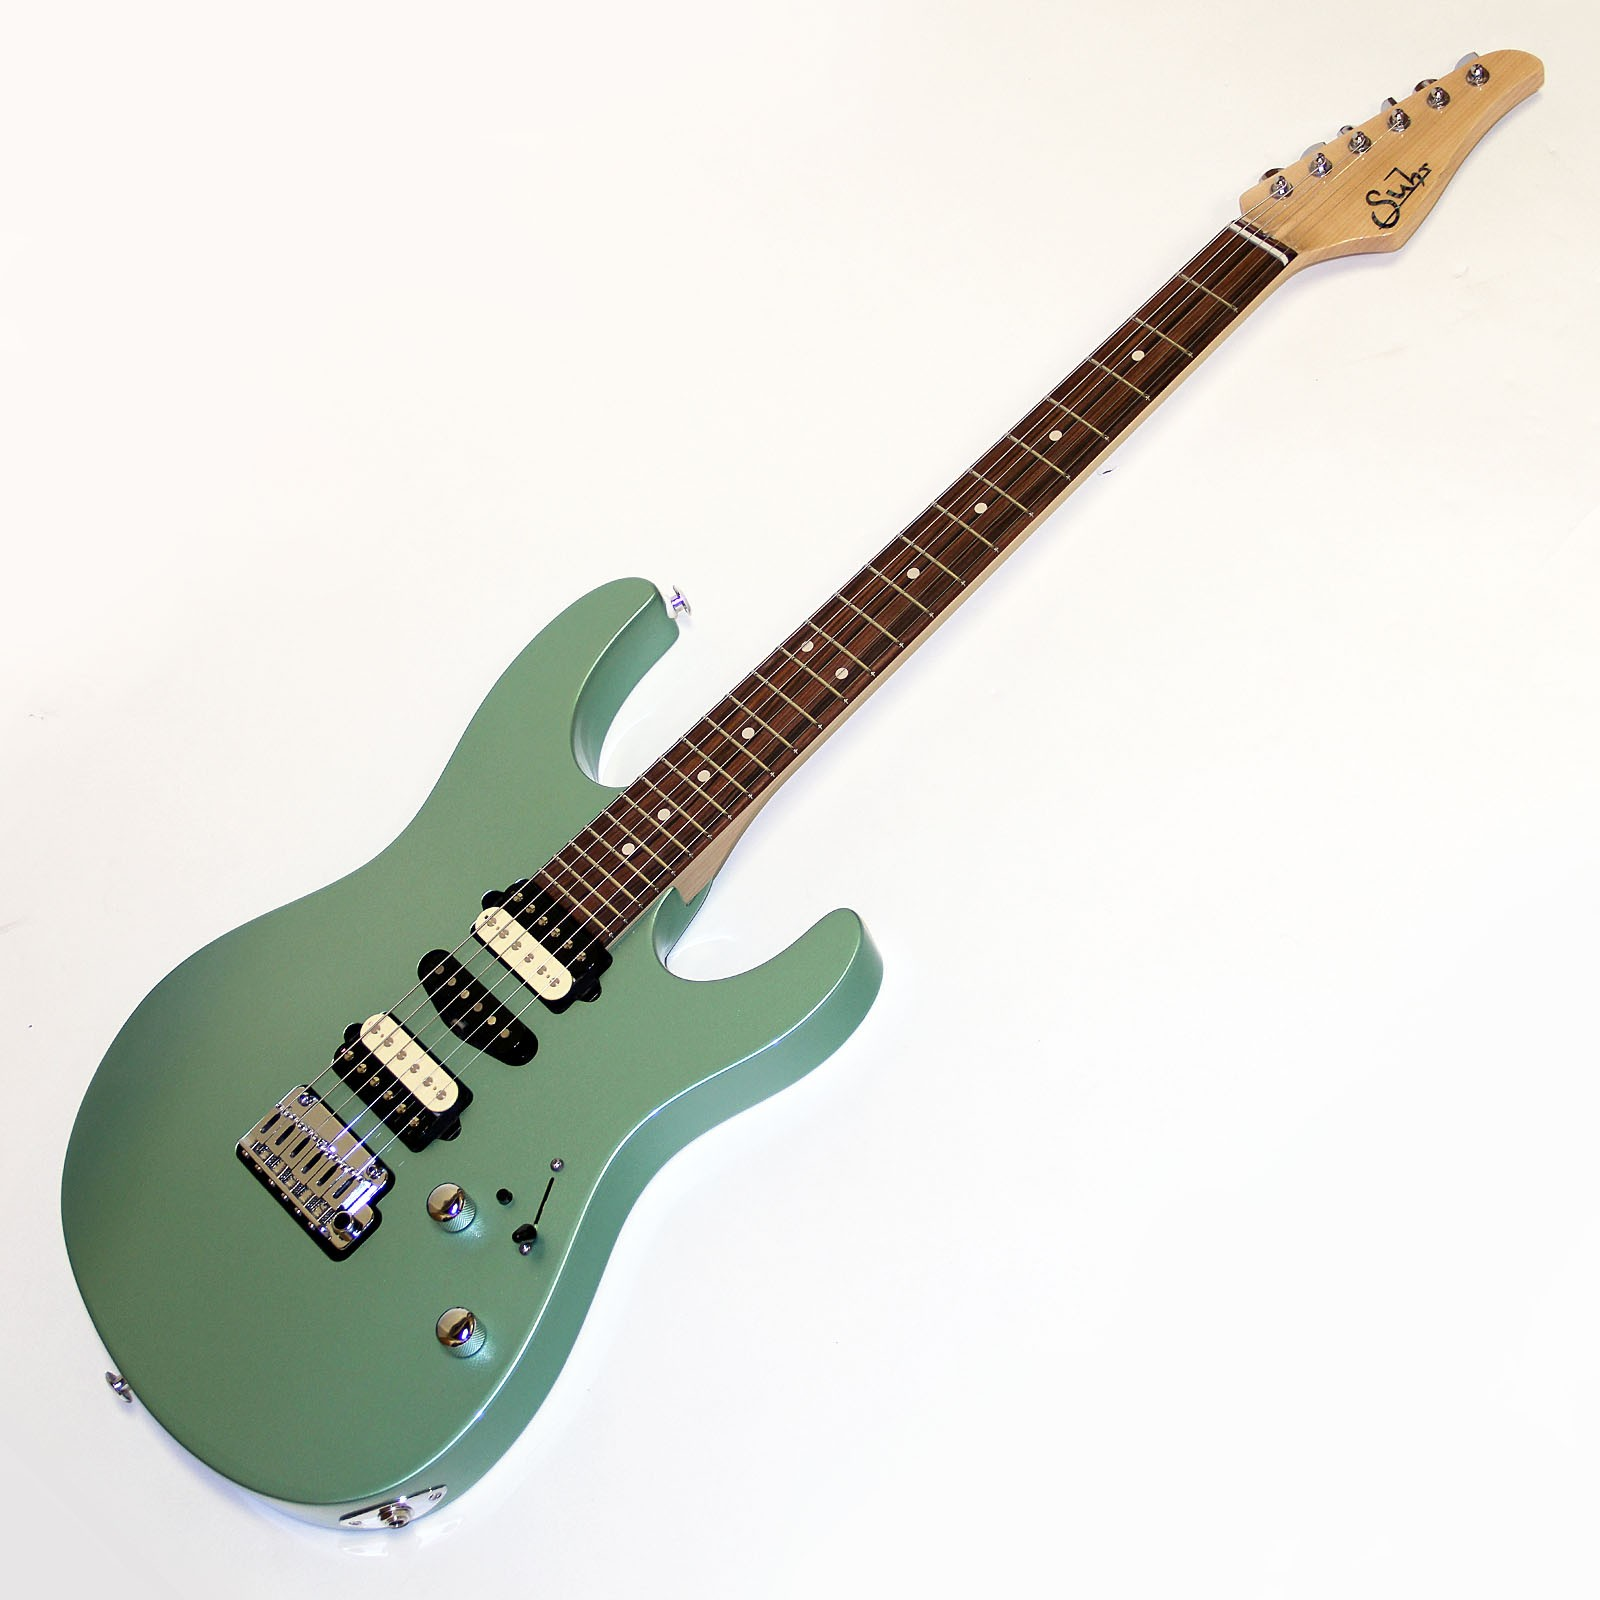 suhr modern cactus green metallic stratocaster guitar culture stratoblogster. Black Bedroom Furniture Sets. Home Design Ideas